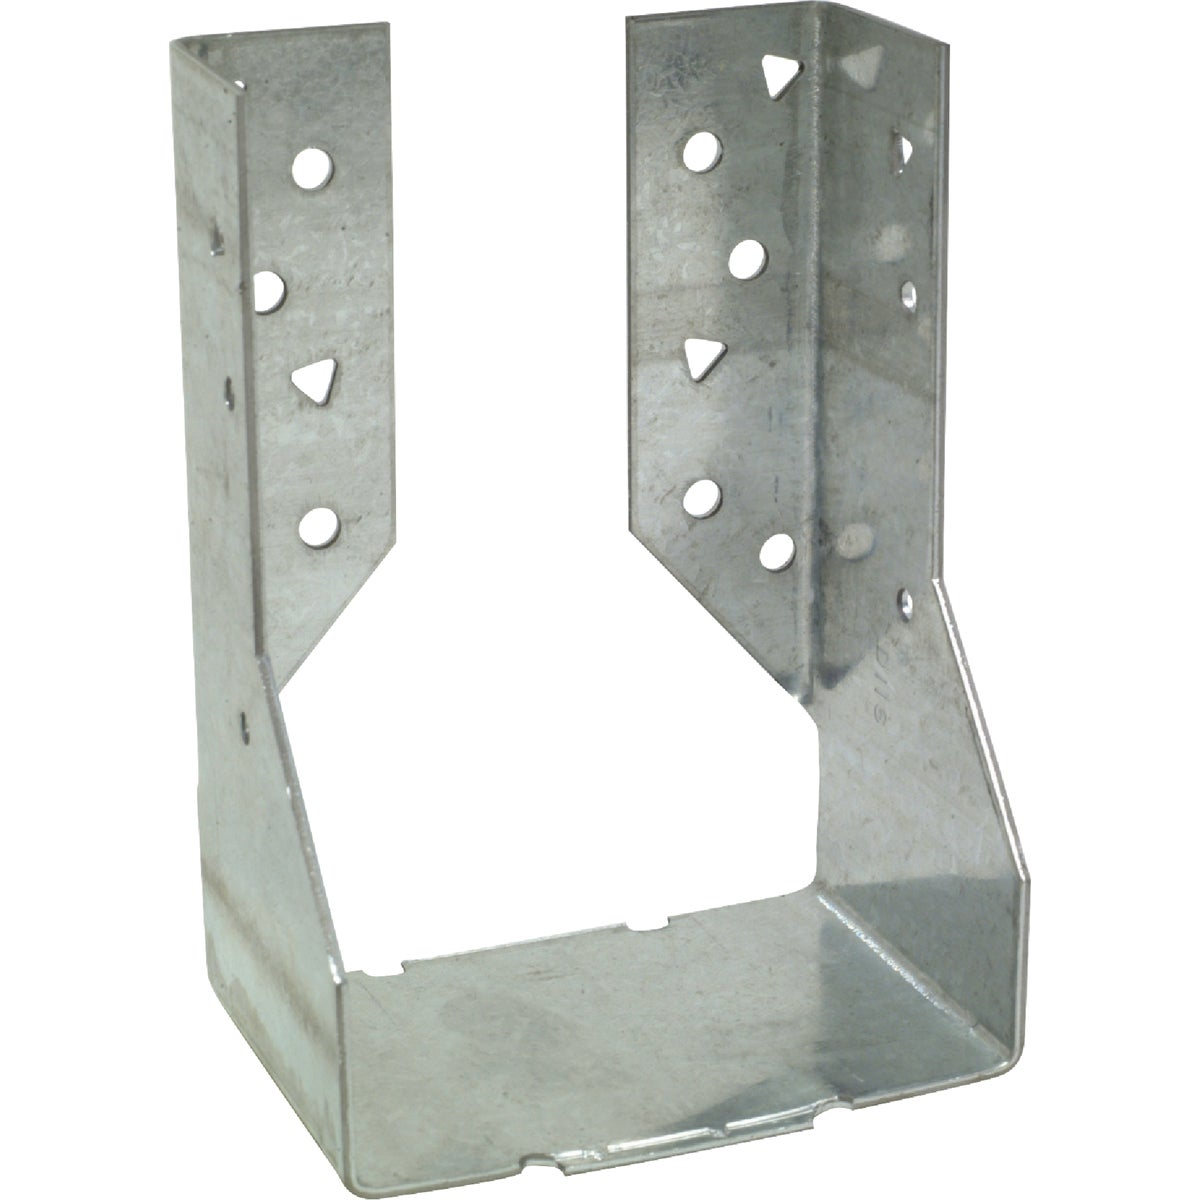 4X6 JOIST HANGER - HUC46 by Simpson Strong Tie